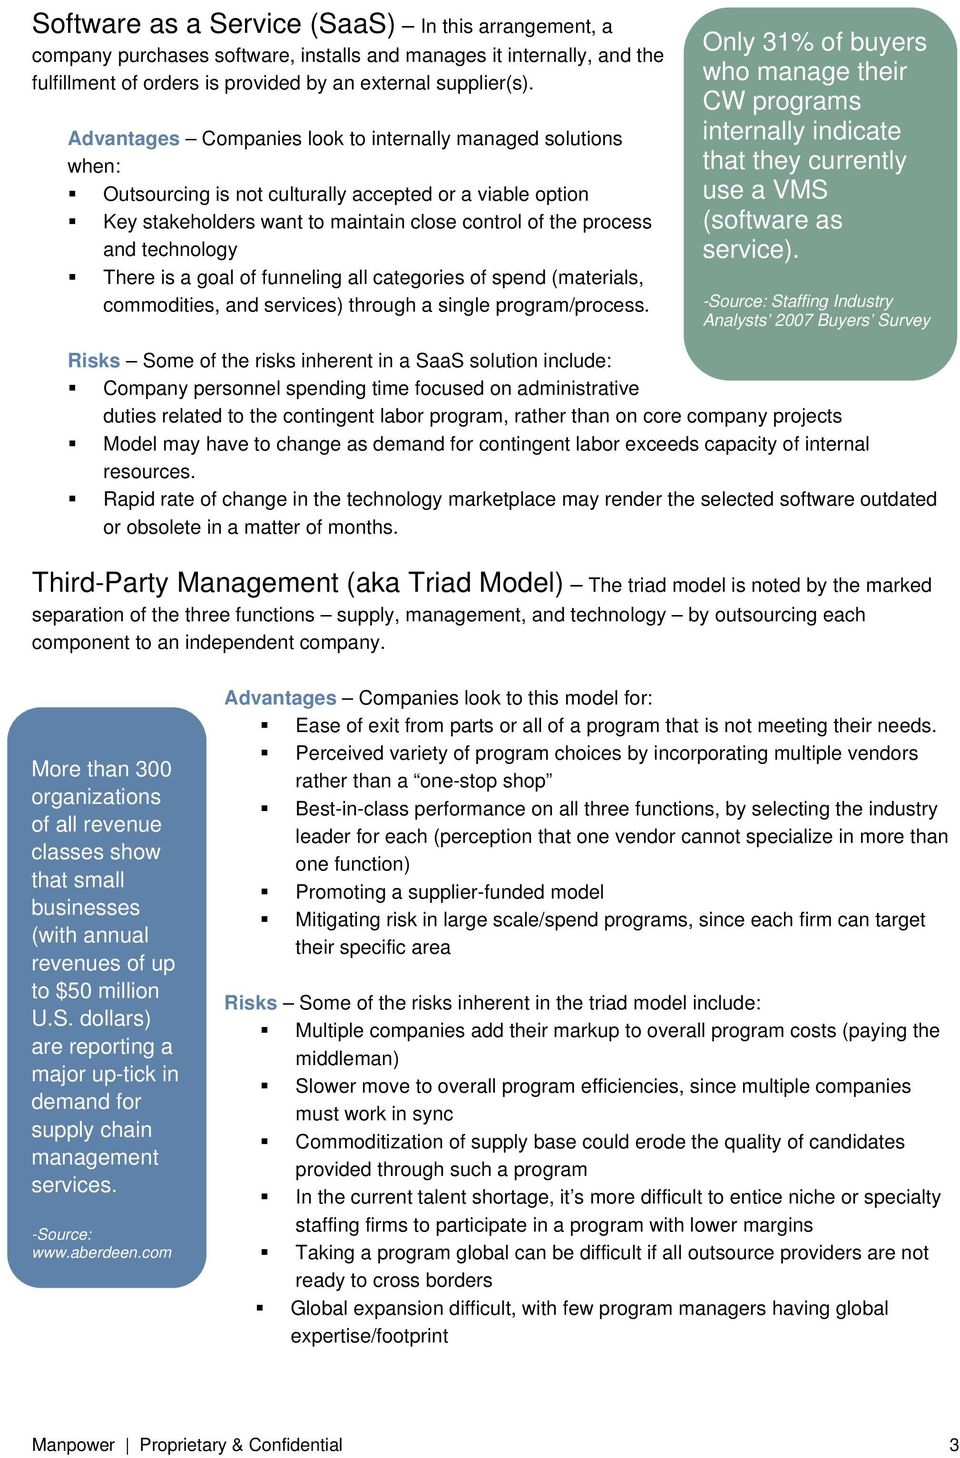 Understanding the MSP/VMS Marketplace Best Practices: Selecting a